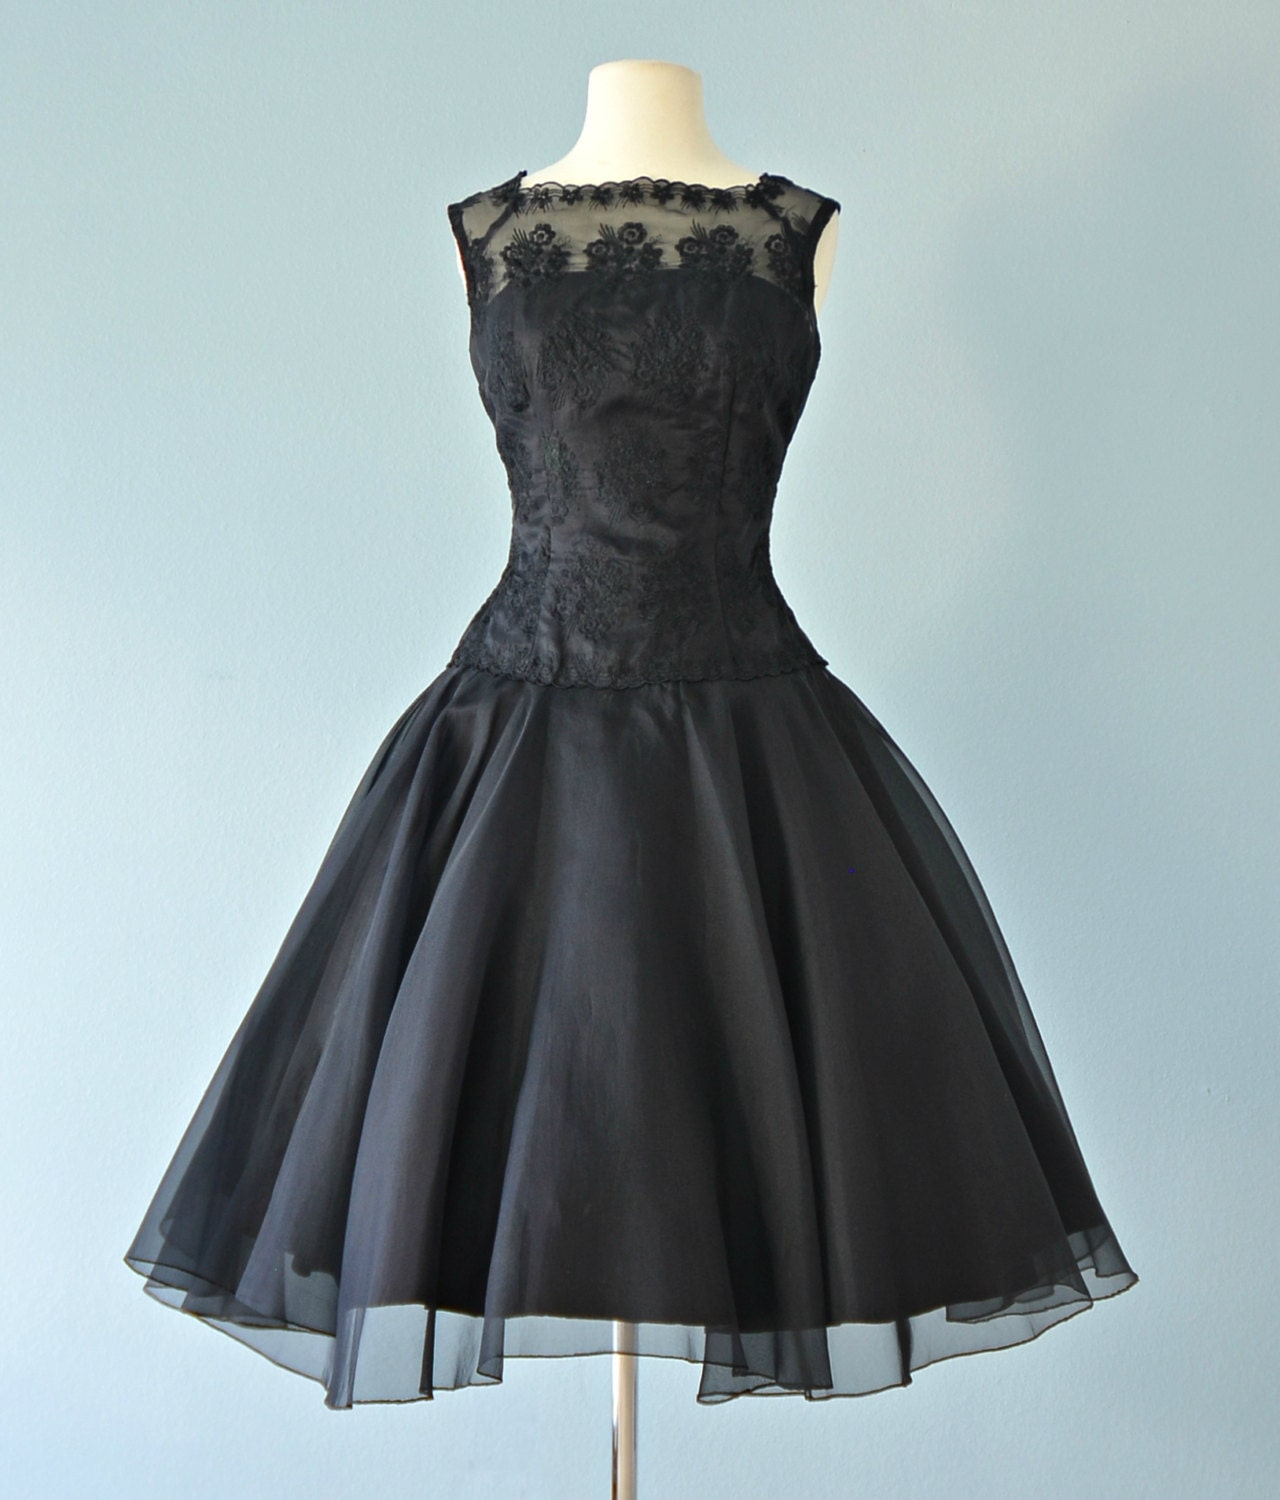 Vintage 1950s Party Dress...ELINOR GAY Black Embroidered